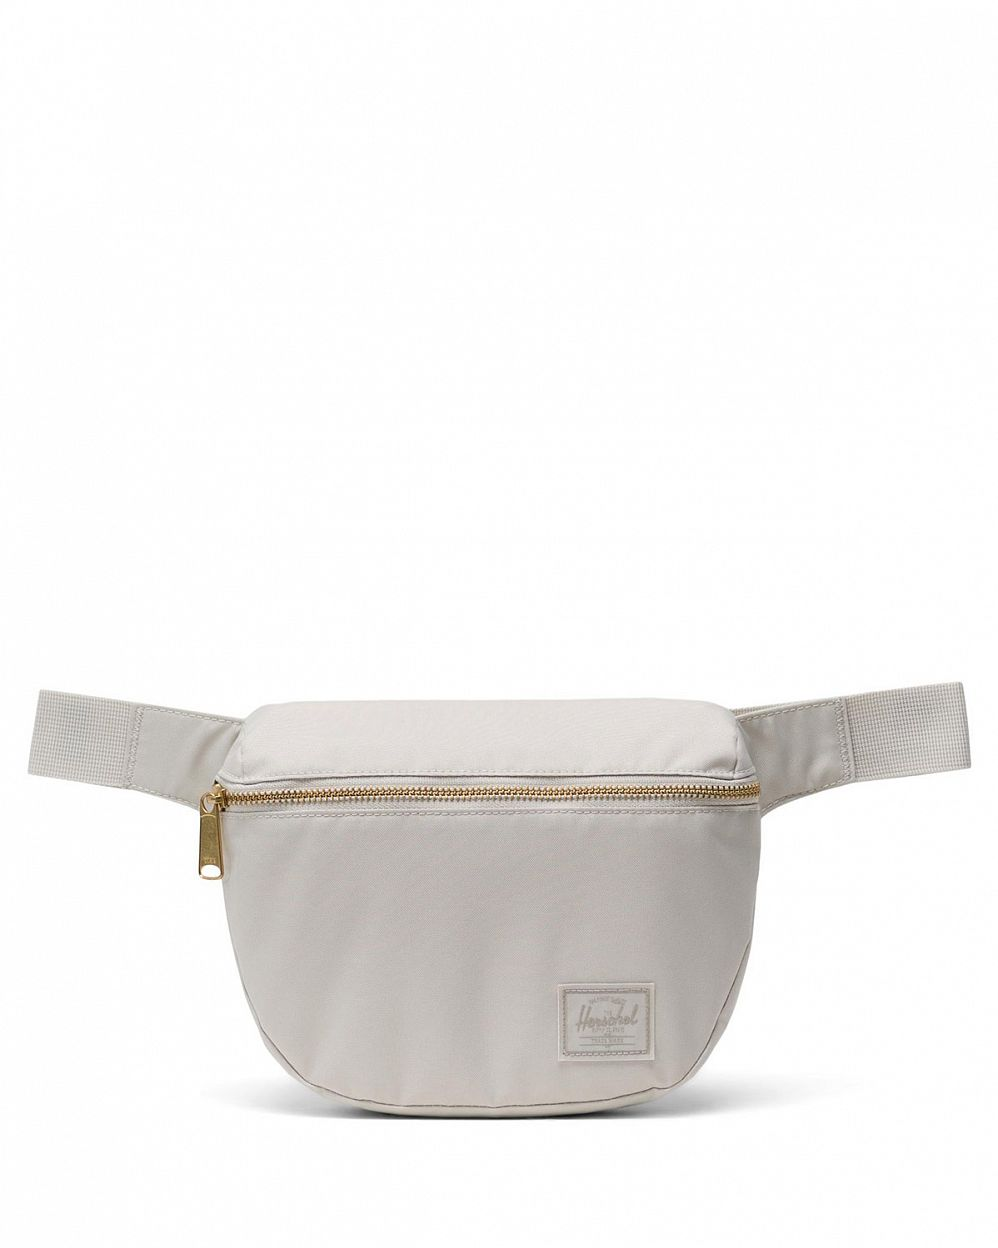 Сумка поясная Herschel Fifteen Light Cameo Moonstruck отзывы